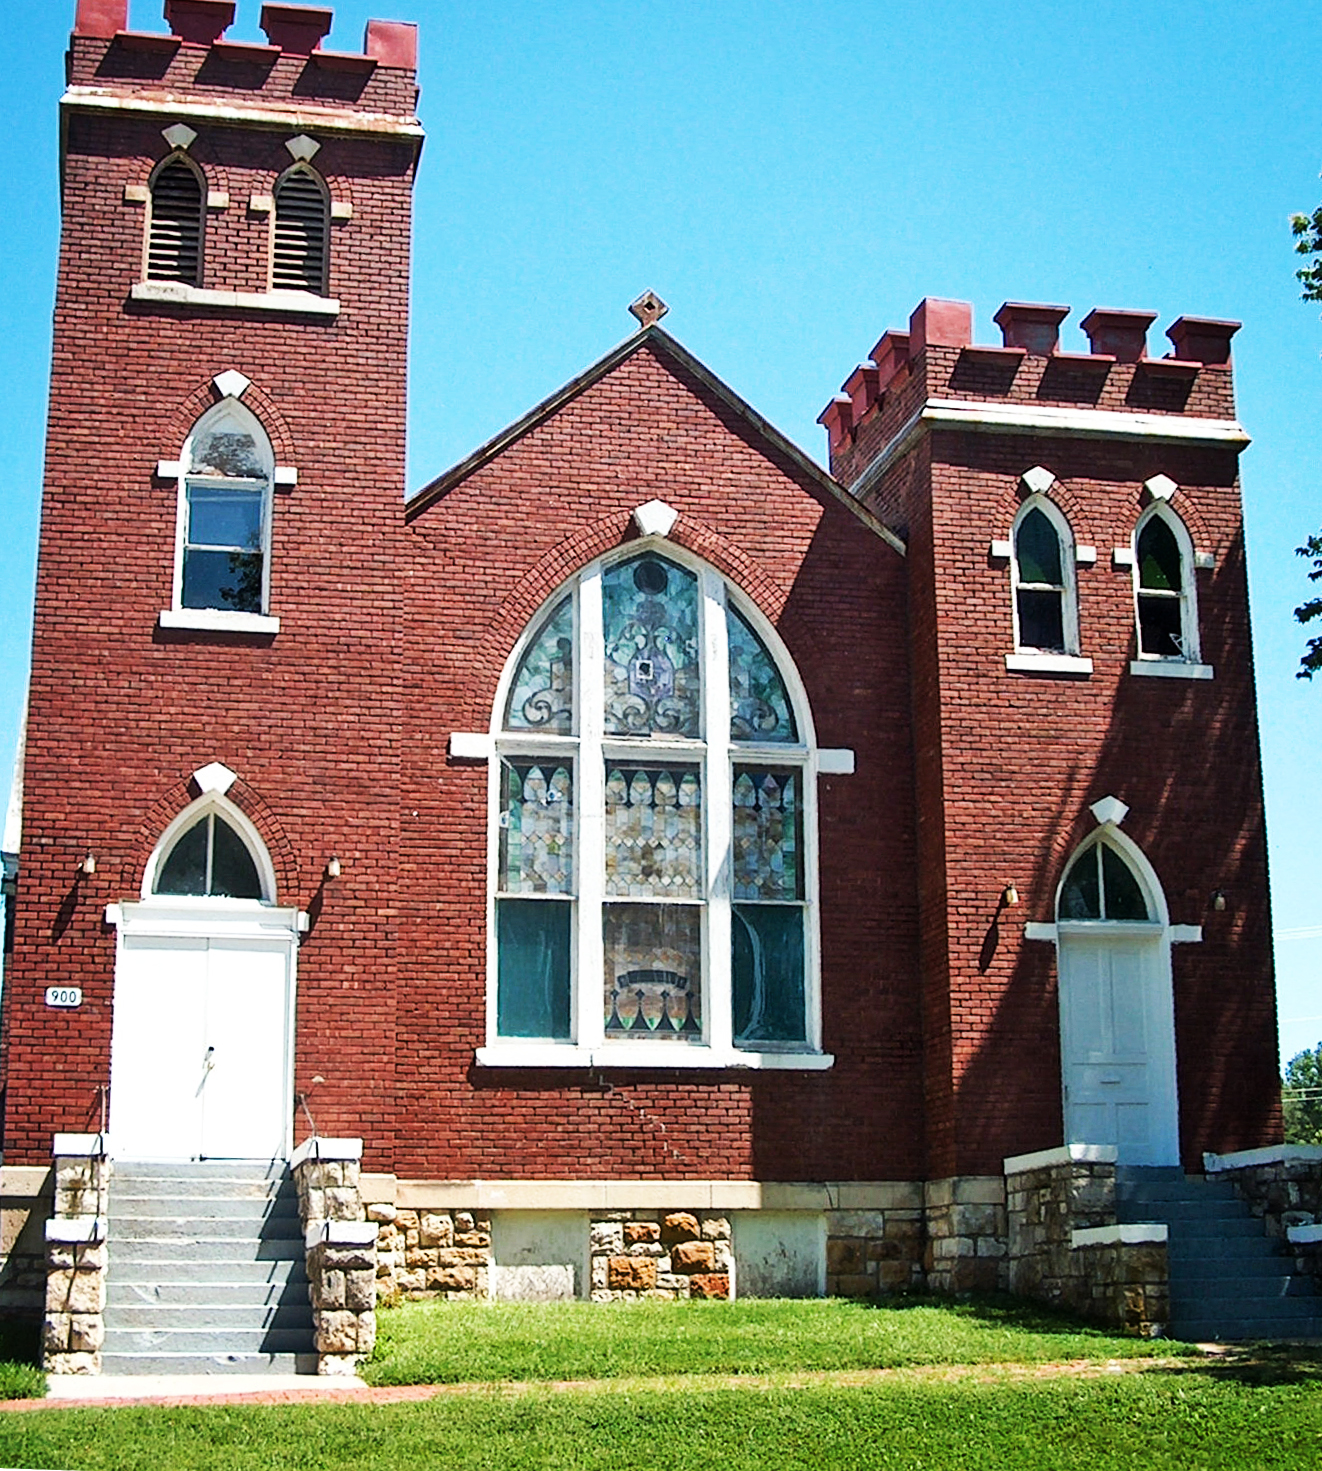 St. Luke AME Church, 900 NEW YORK ST, LAWRENCE, KS